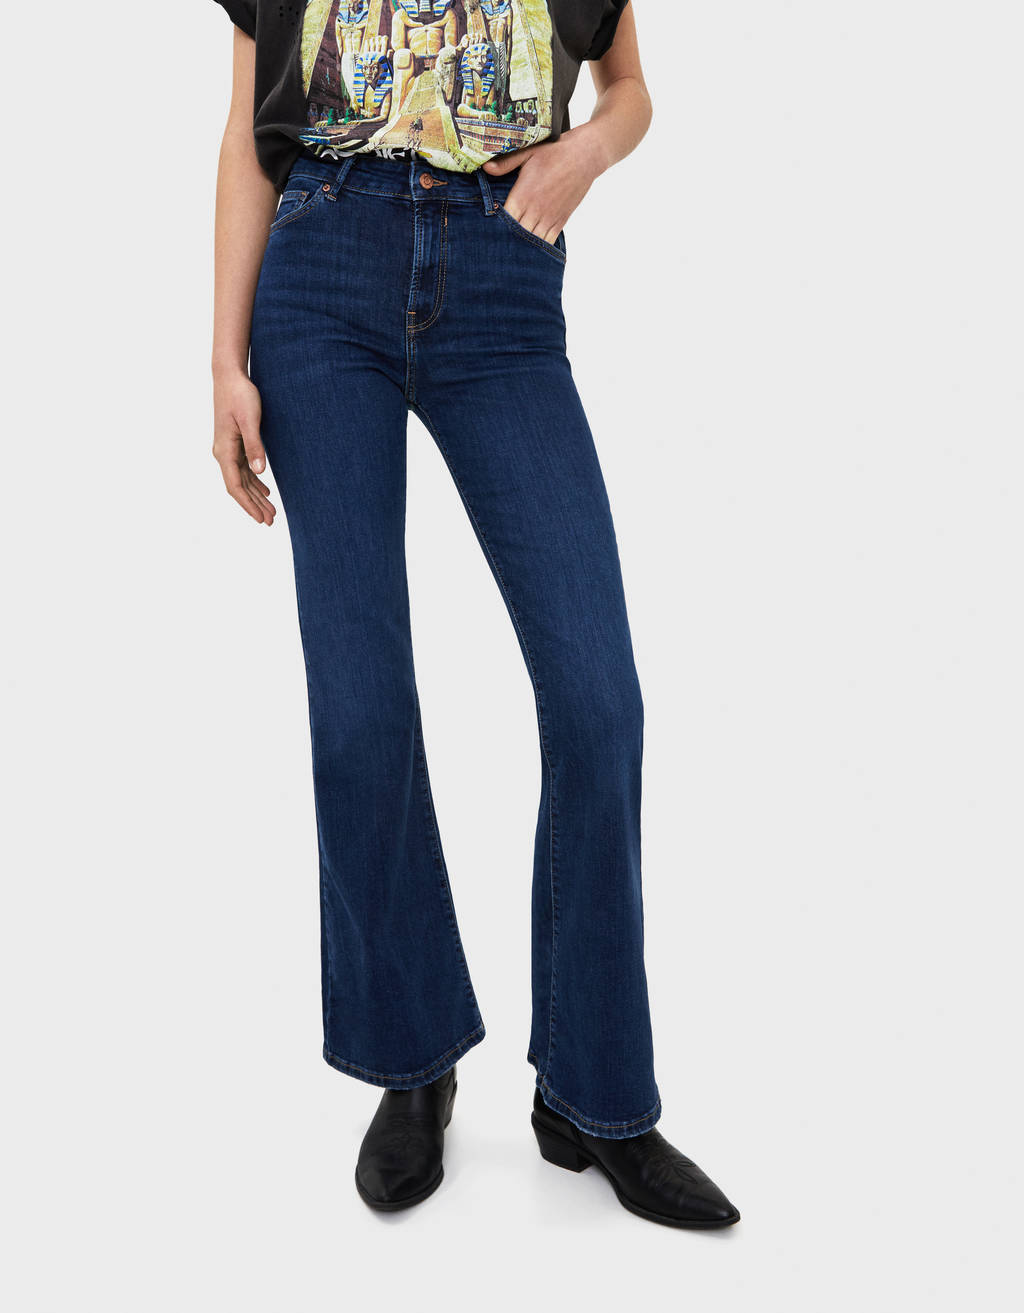 Jeans Flare Fit